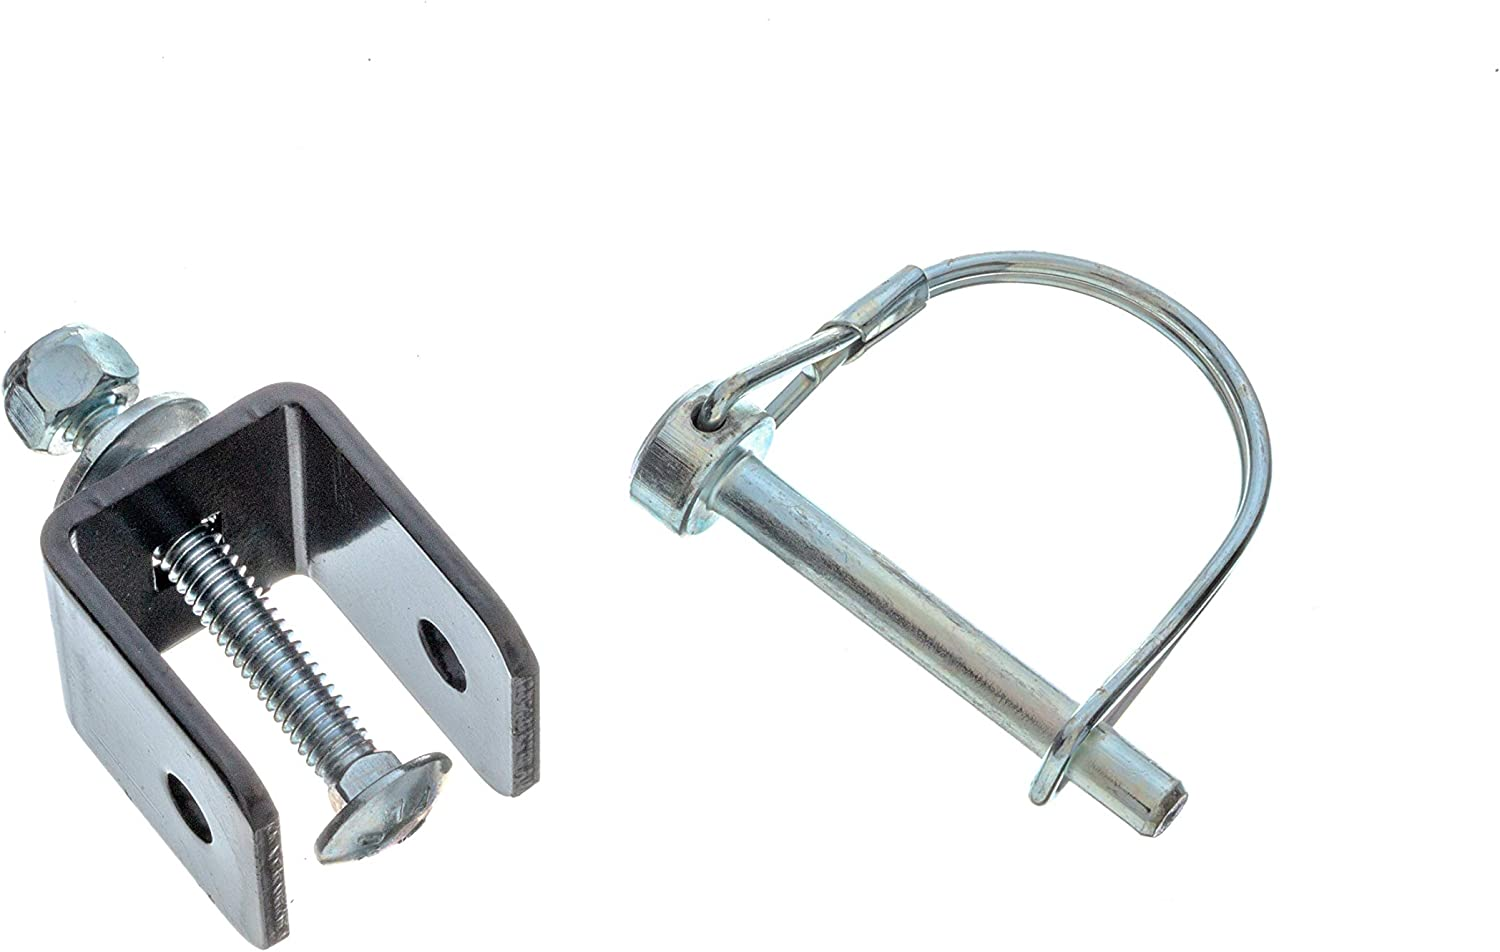 attwood Replacement Bolt on Bracket for Transom Savers Replacement Bolt on Bracket SP-402 for Transom Savers, One Size